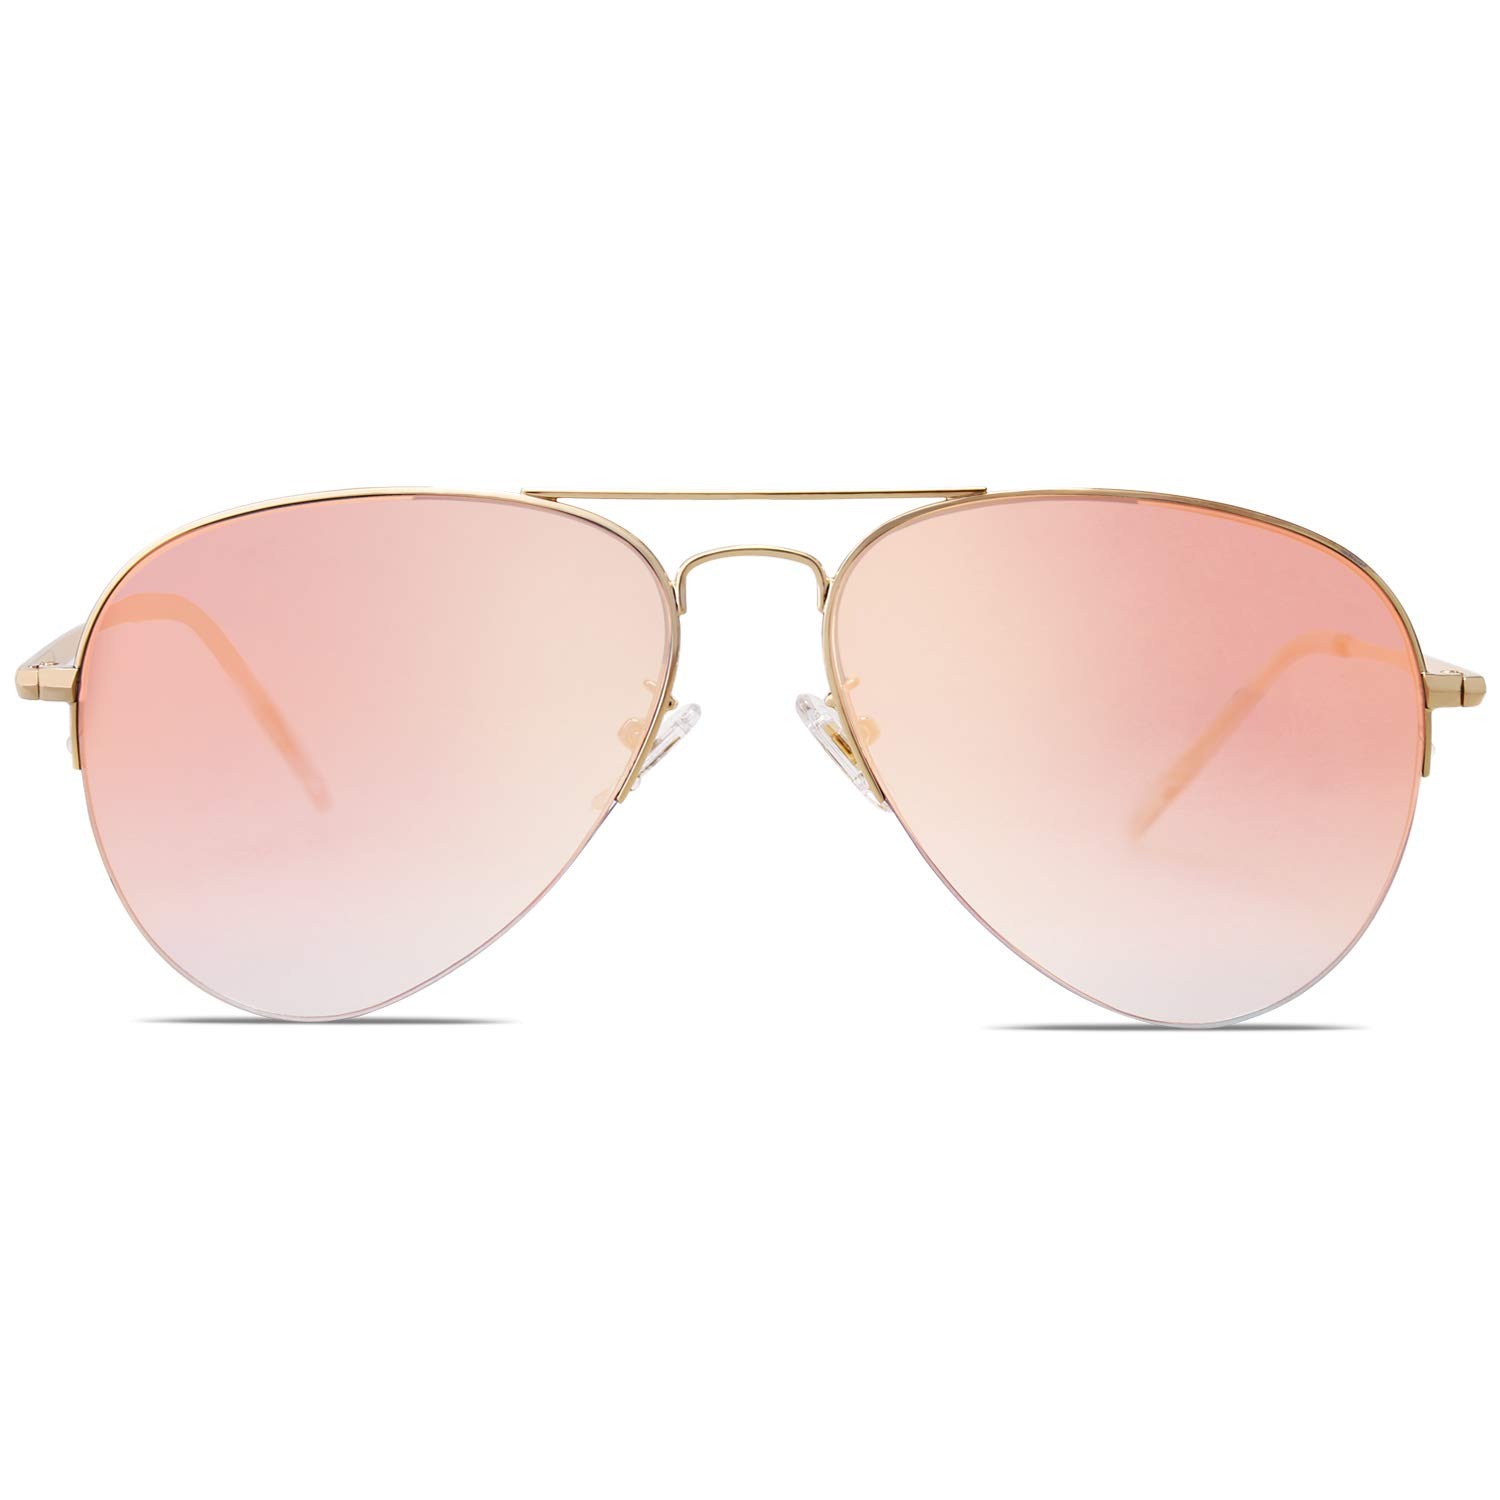 SOJOS Classic Aviator Mens Womens Sunglasses Metal Half Rim Mirrored Lens INSPIRATION SJ1106 with Gold Frame/Gradient Pink Mirrored Lens by SOJOS